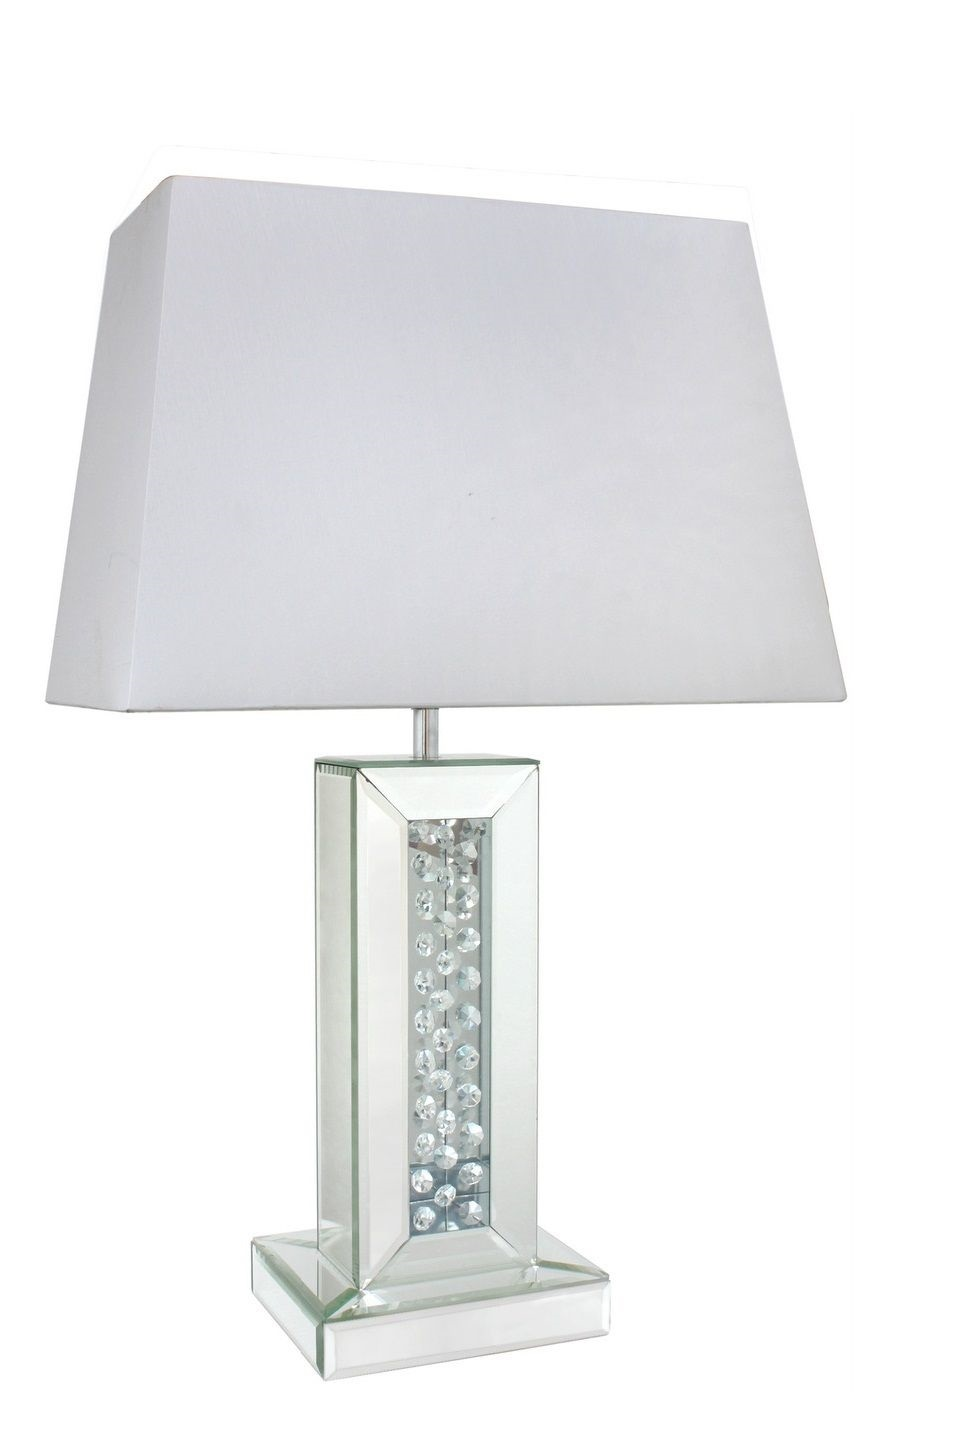 mirror-table-lamp-photo-16